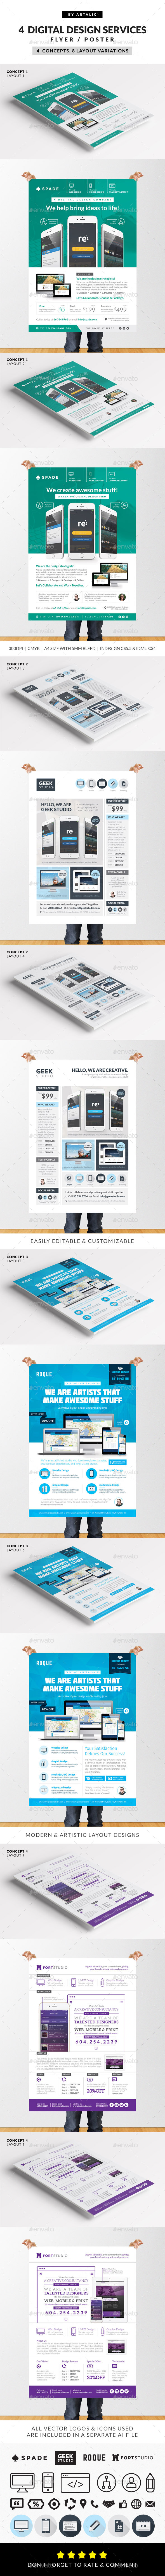 4 Design (Web/App/Graphic) Services Flyer/Poster | Design web ...